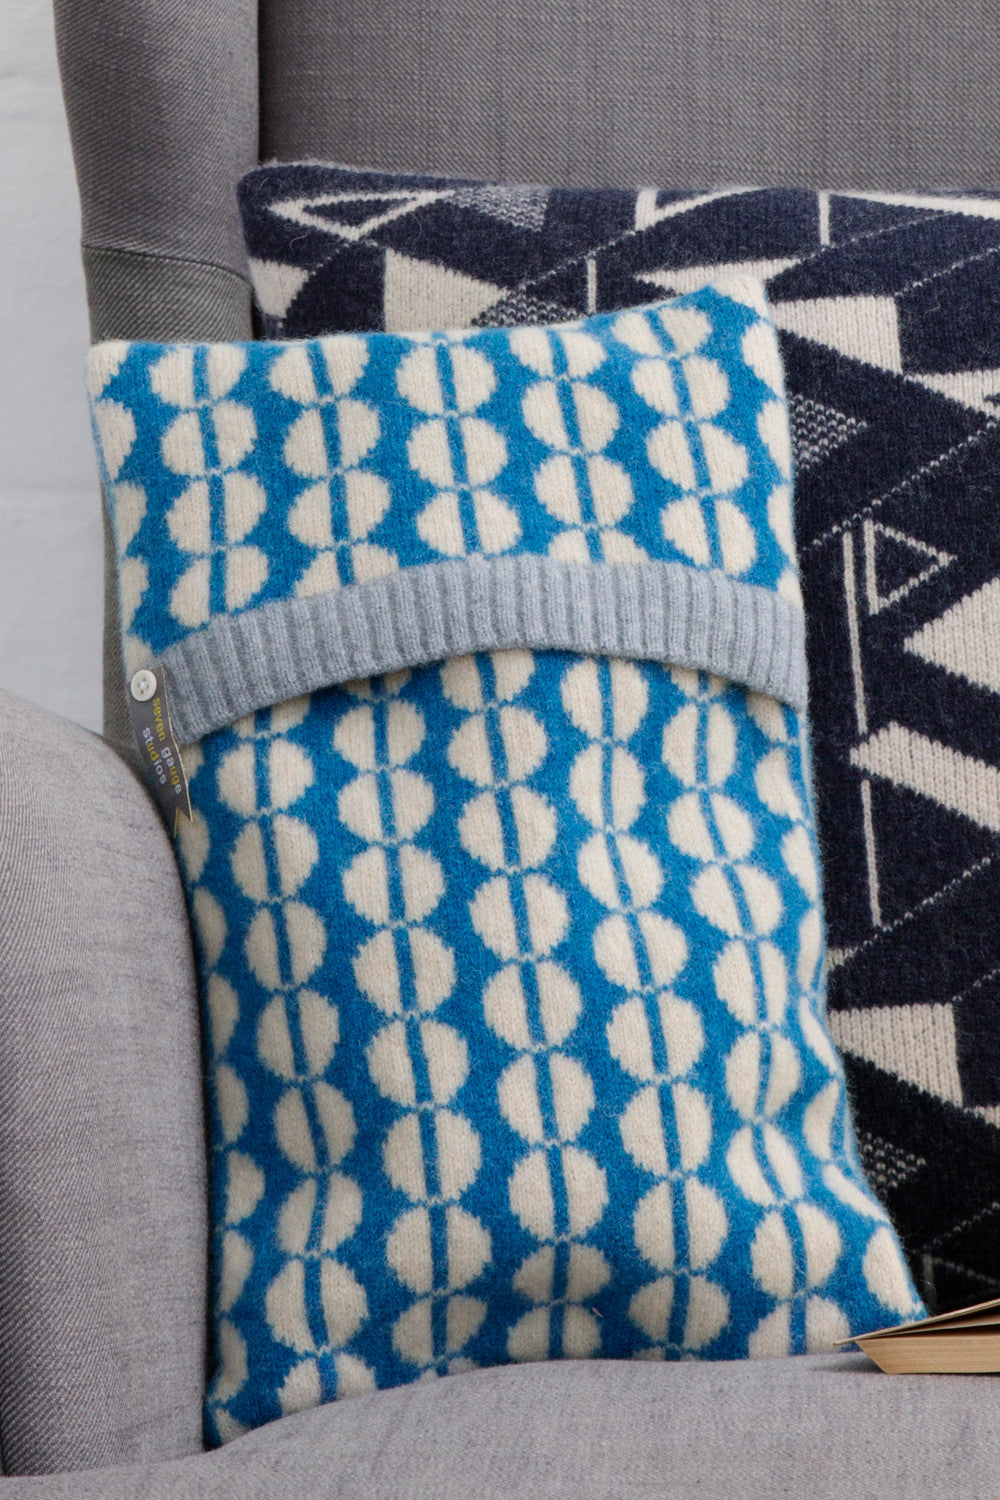 Spot lambswool knitted hot water bottle in oatmeal and blue